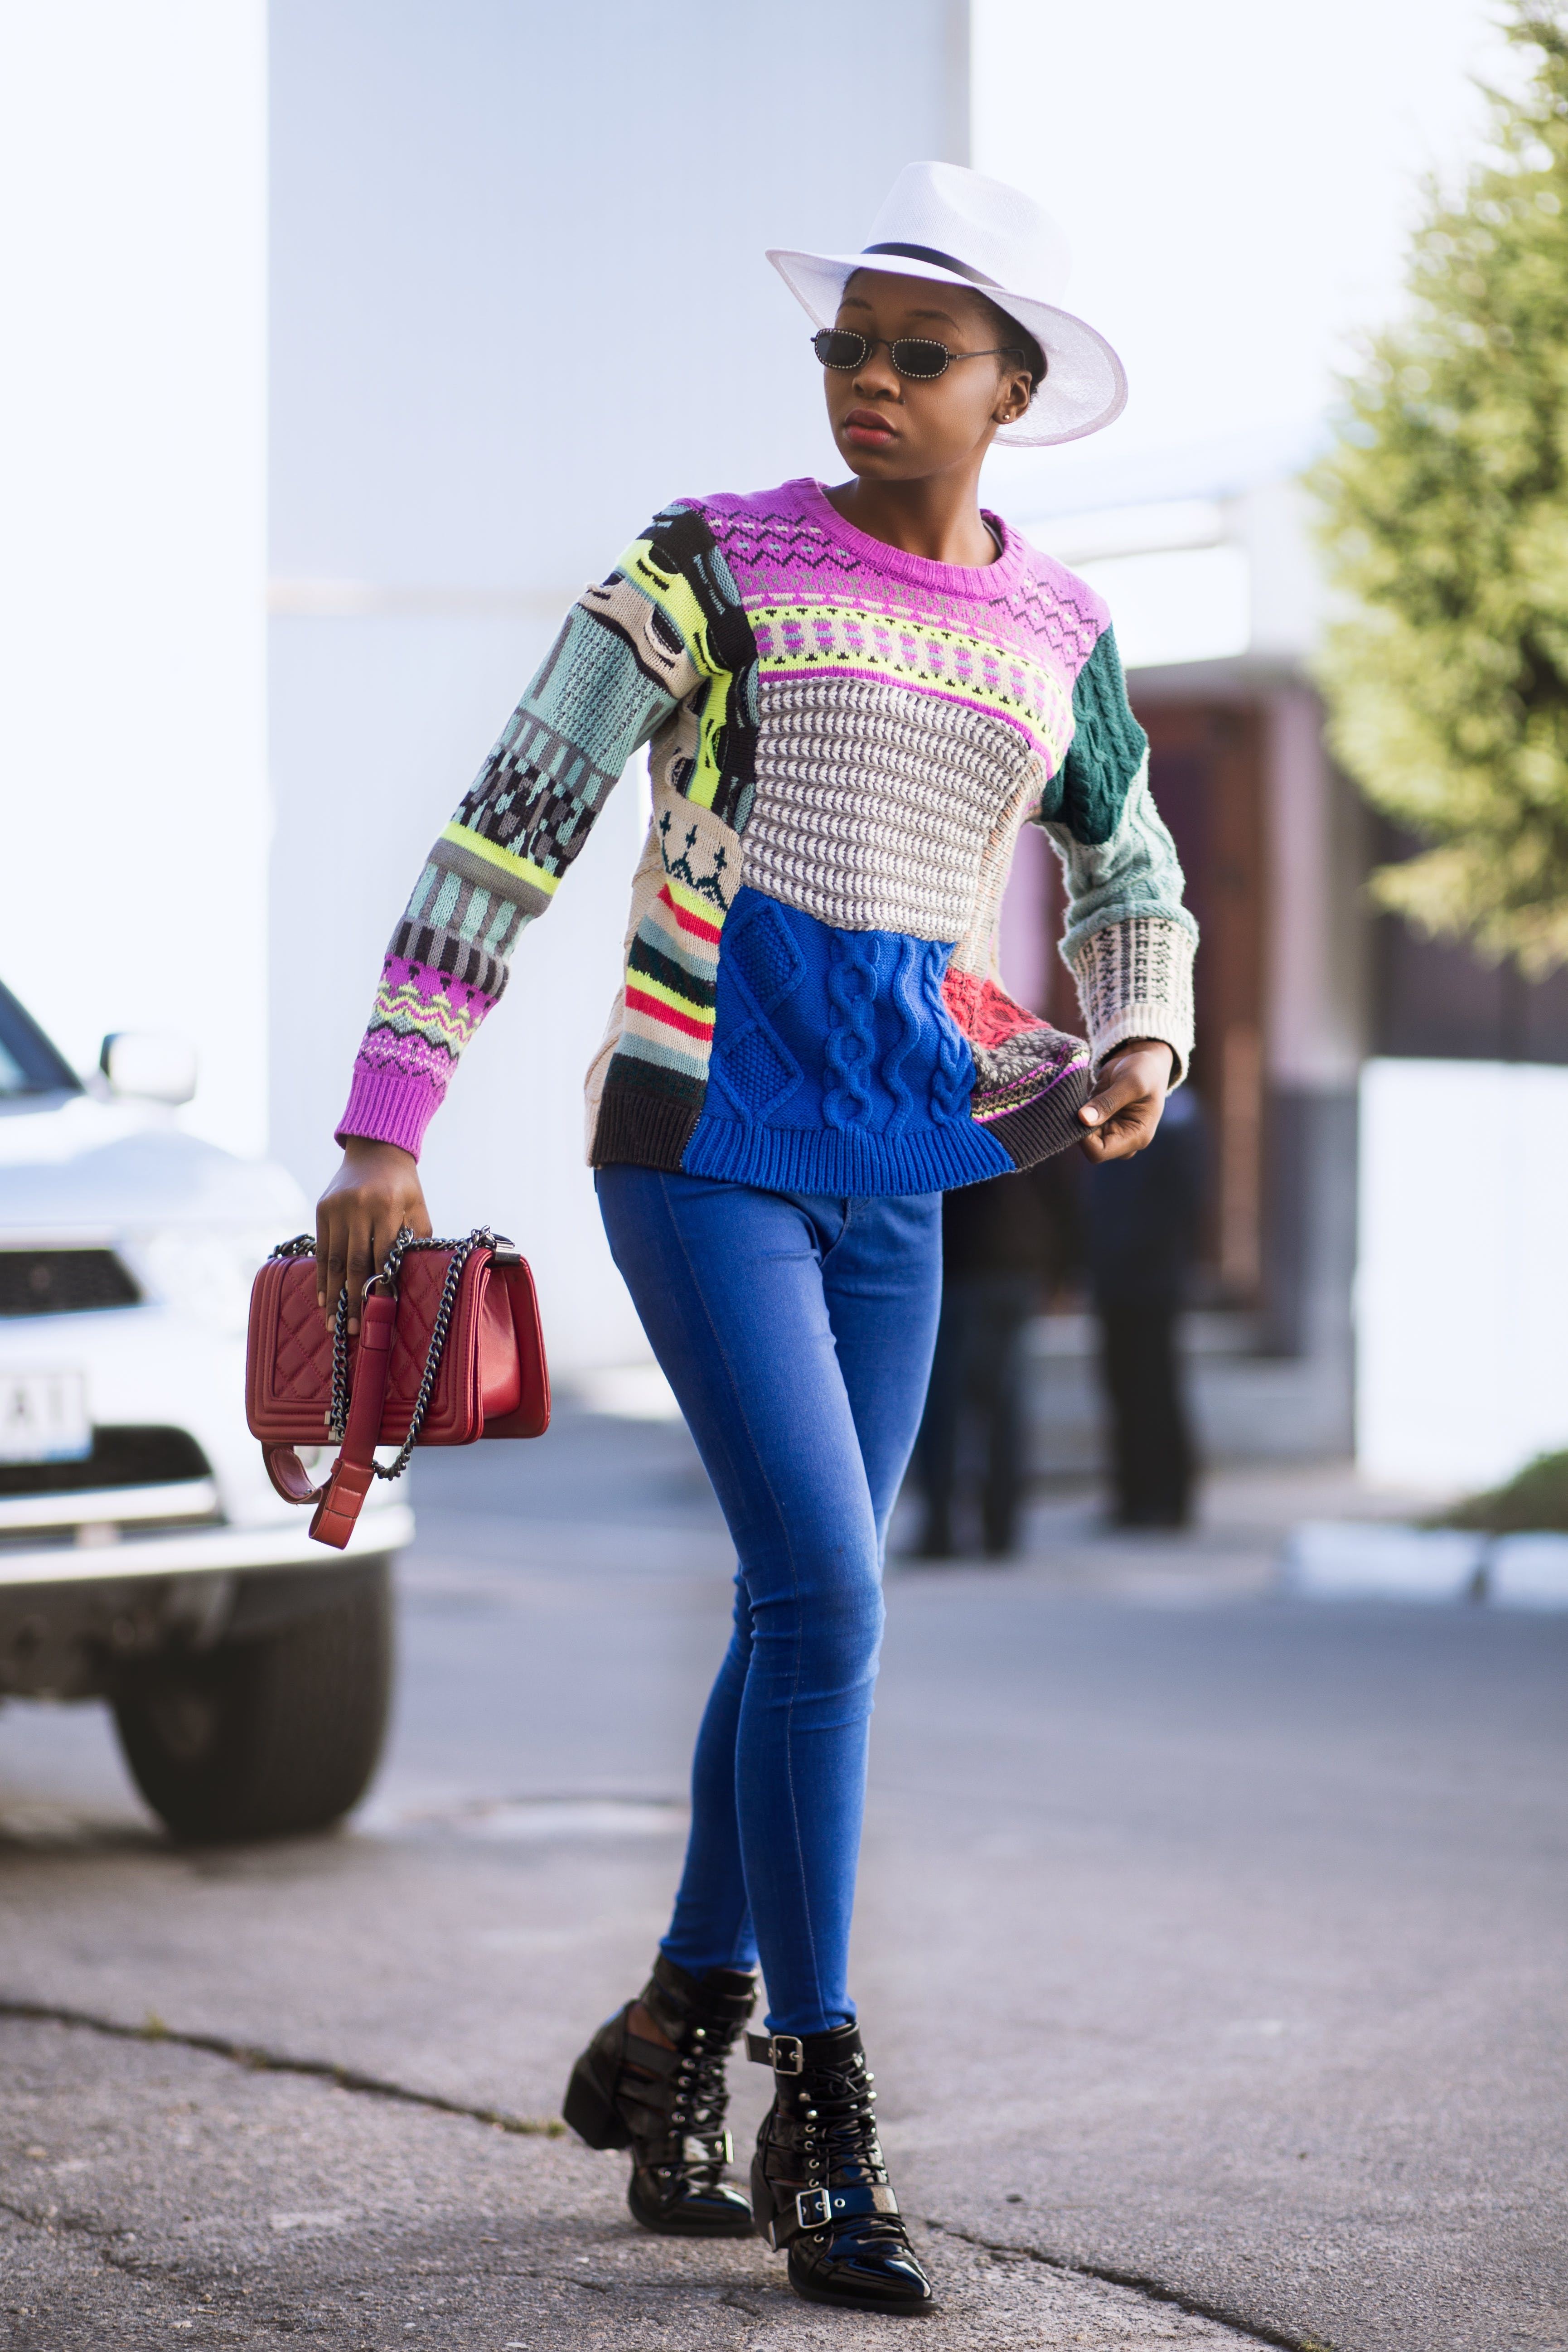 Woman Wearing Multicolored Knit Long-sleeved Top and Blue Denim Skinny Jeans With Hat and Bag on Hand Walking